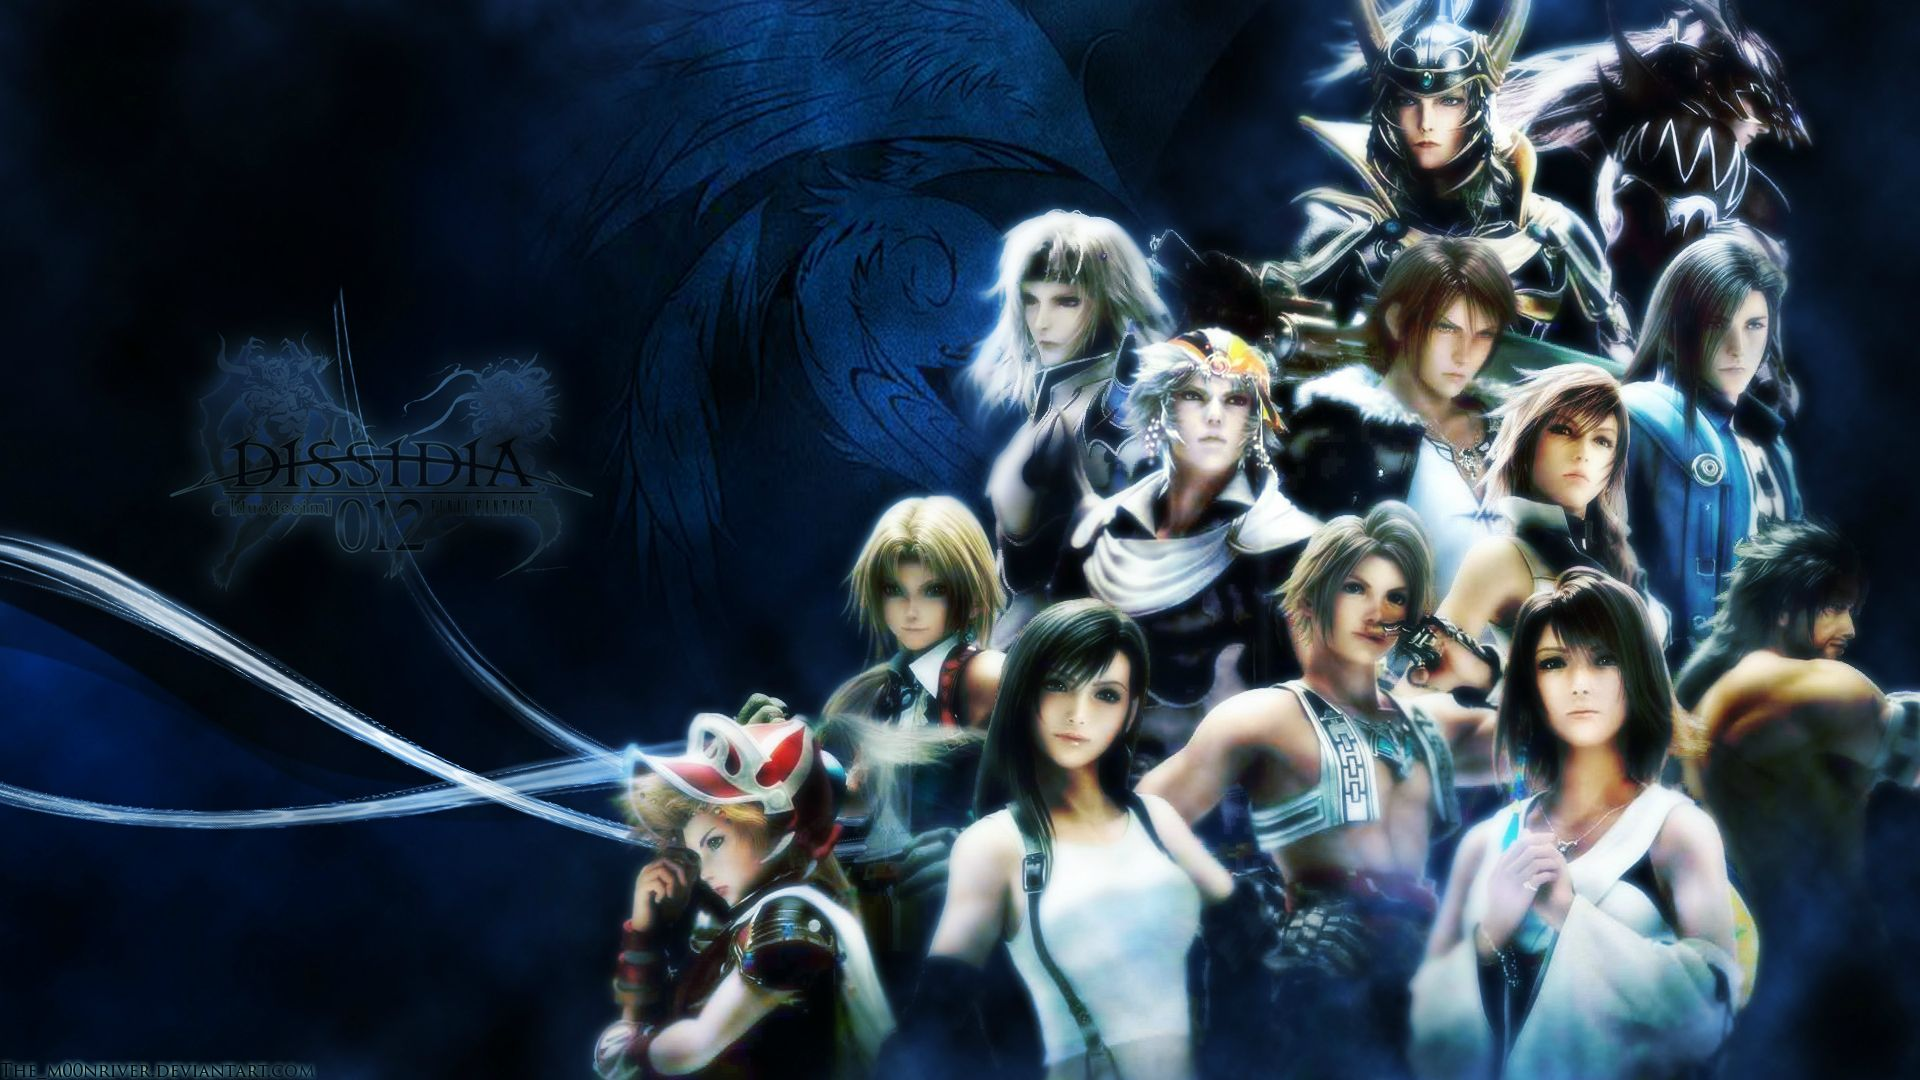 Dissidia 012: Final Fantasy HD Wallpaper | Background Image | 1920x1080 | ID:332757 - Wallpaper Abyss